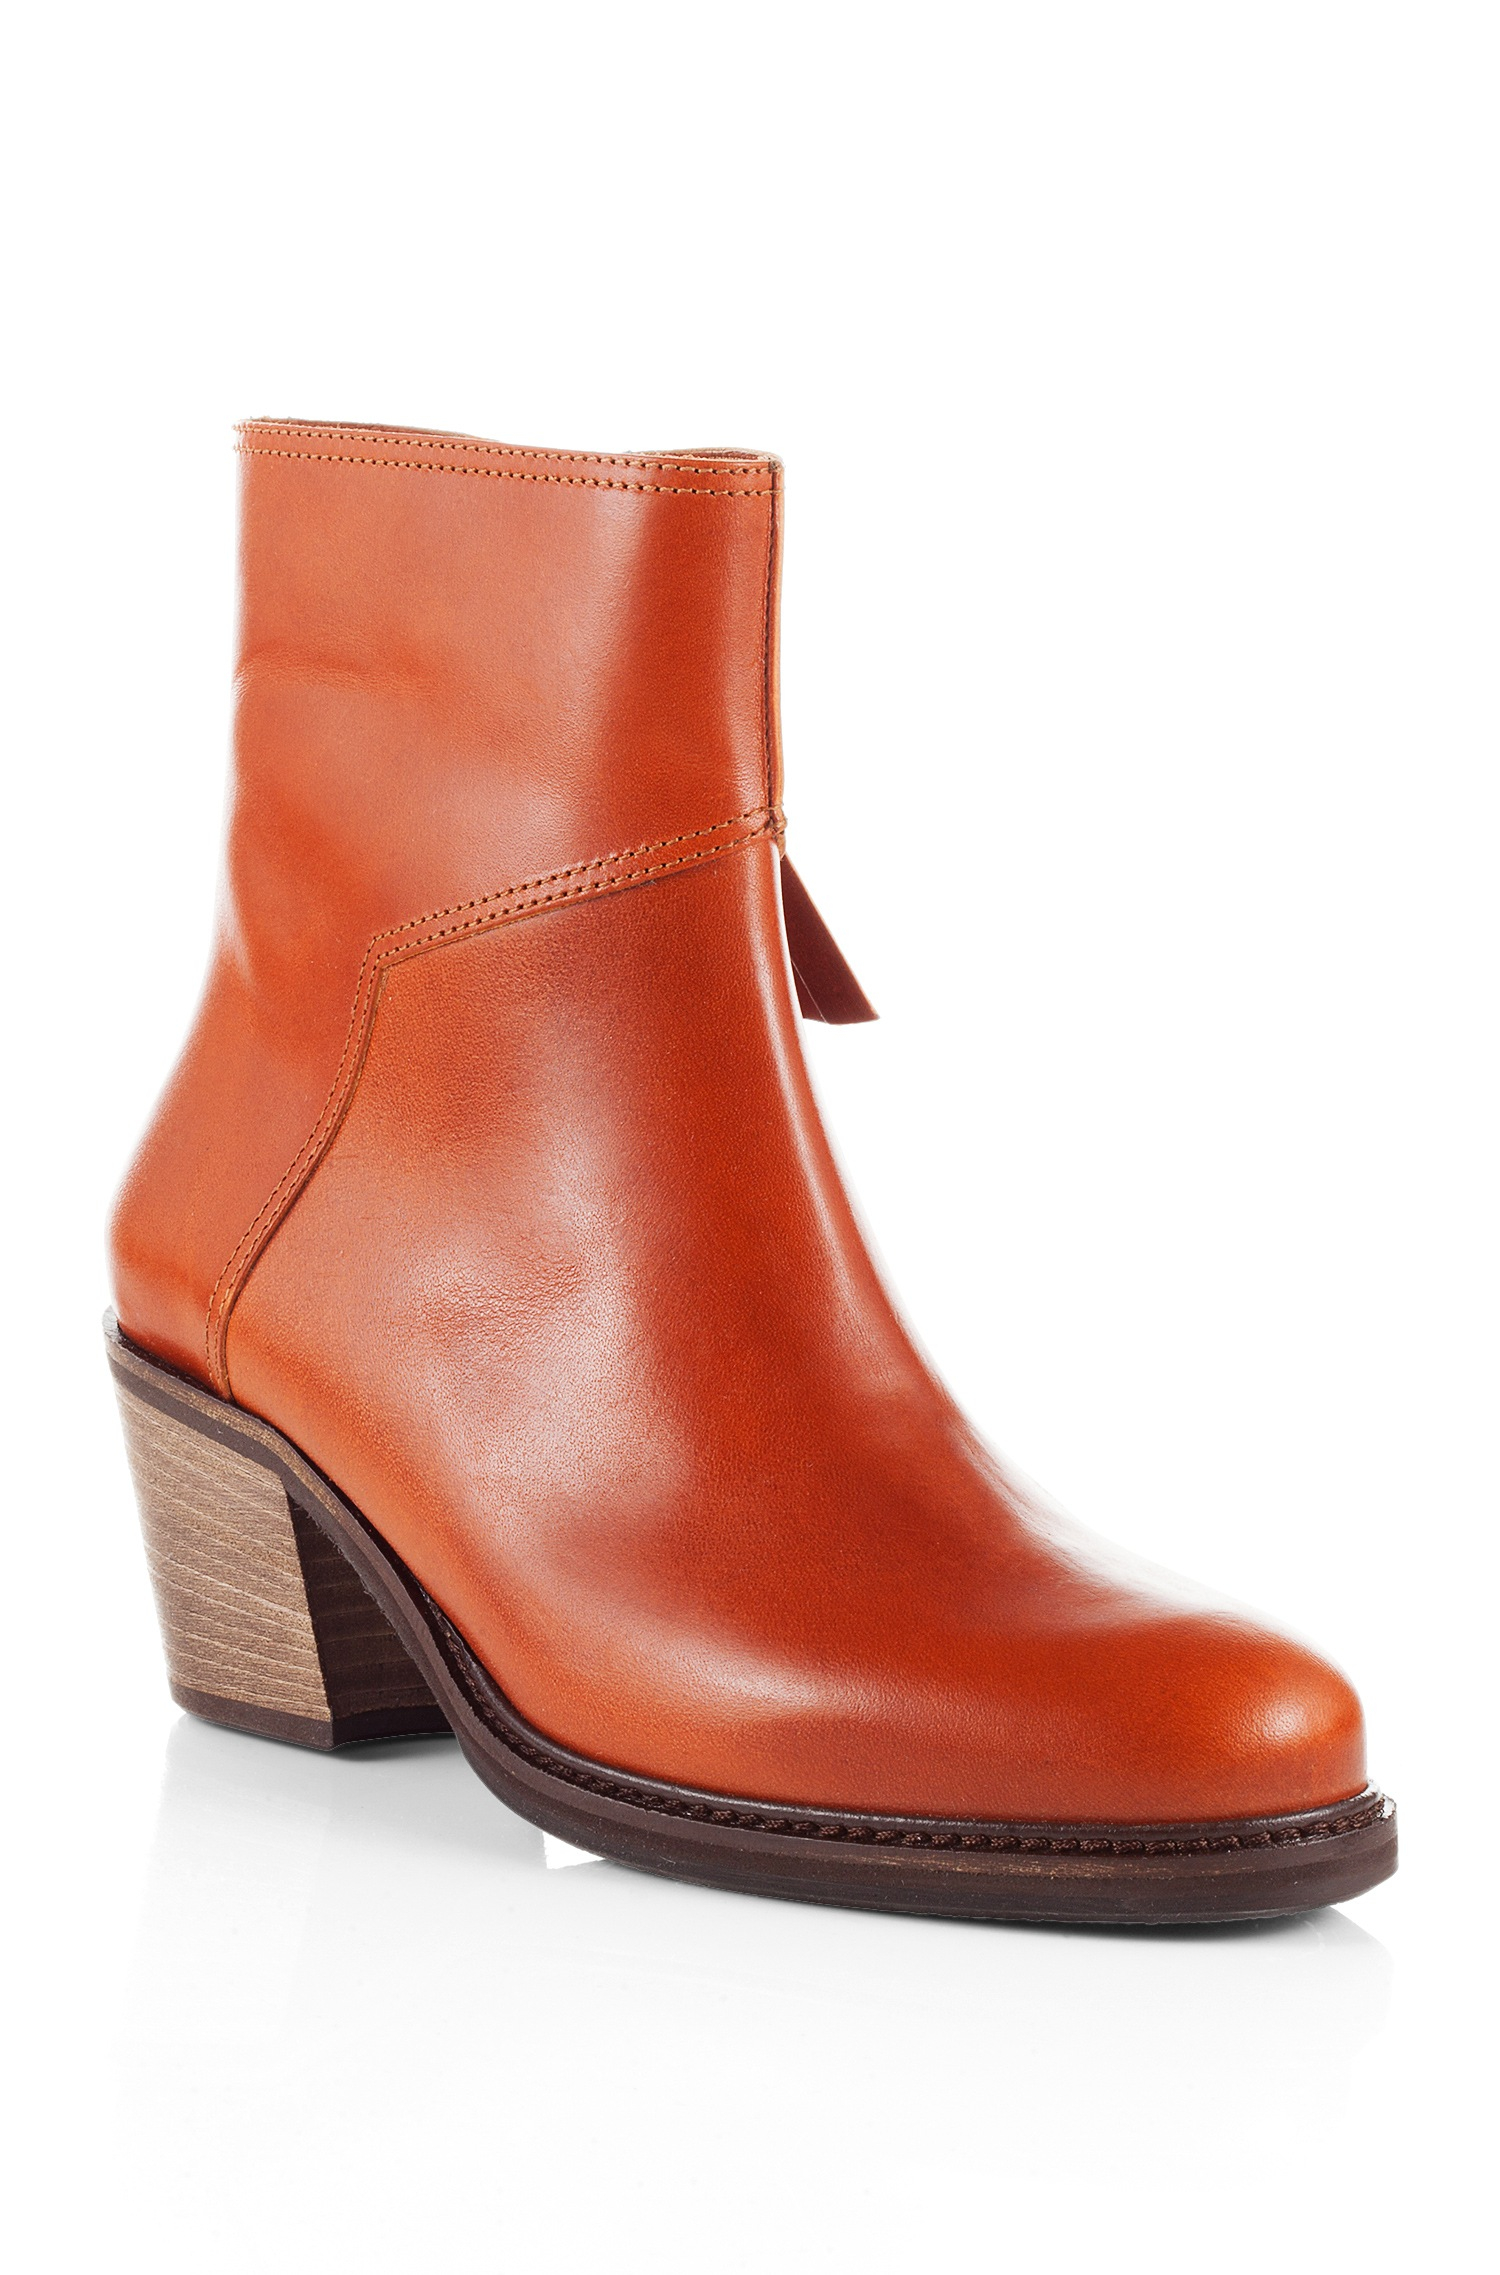 Lyst Boss Orange Ankle Boots Ileen In Smooth Leather